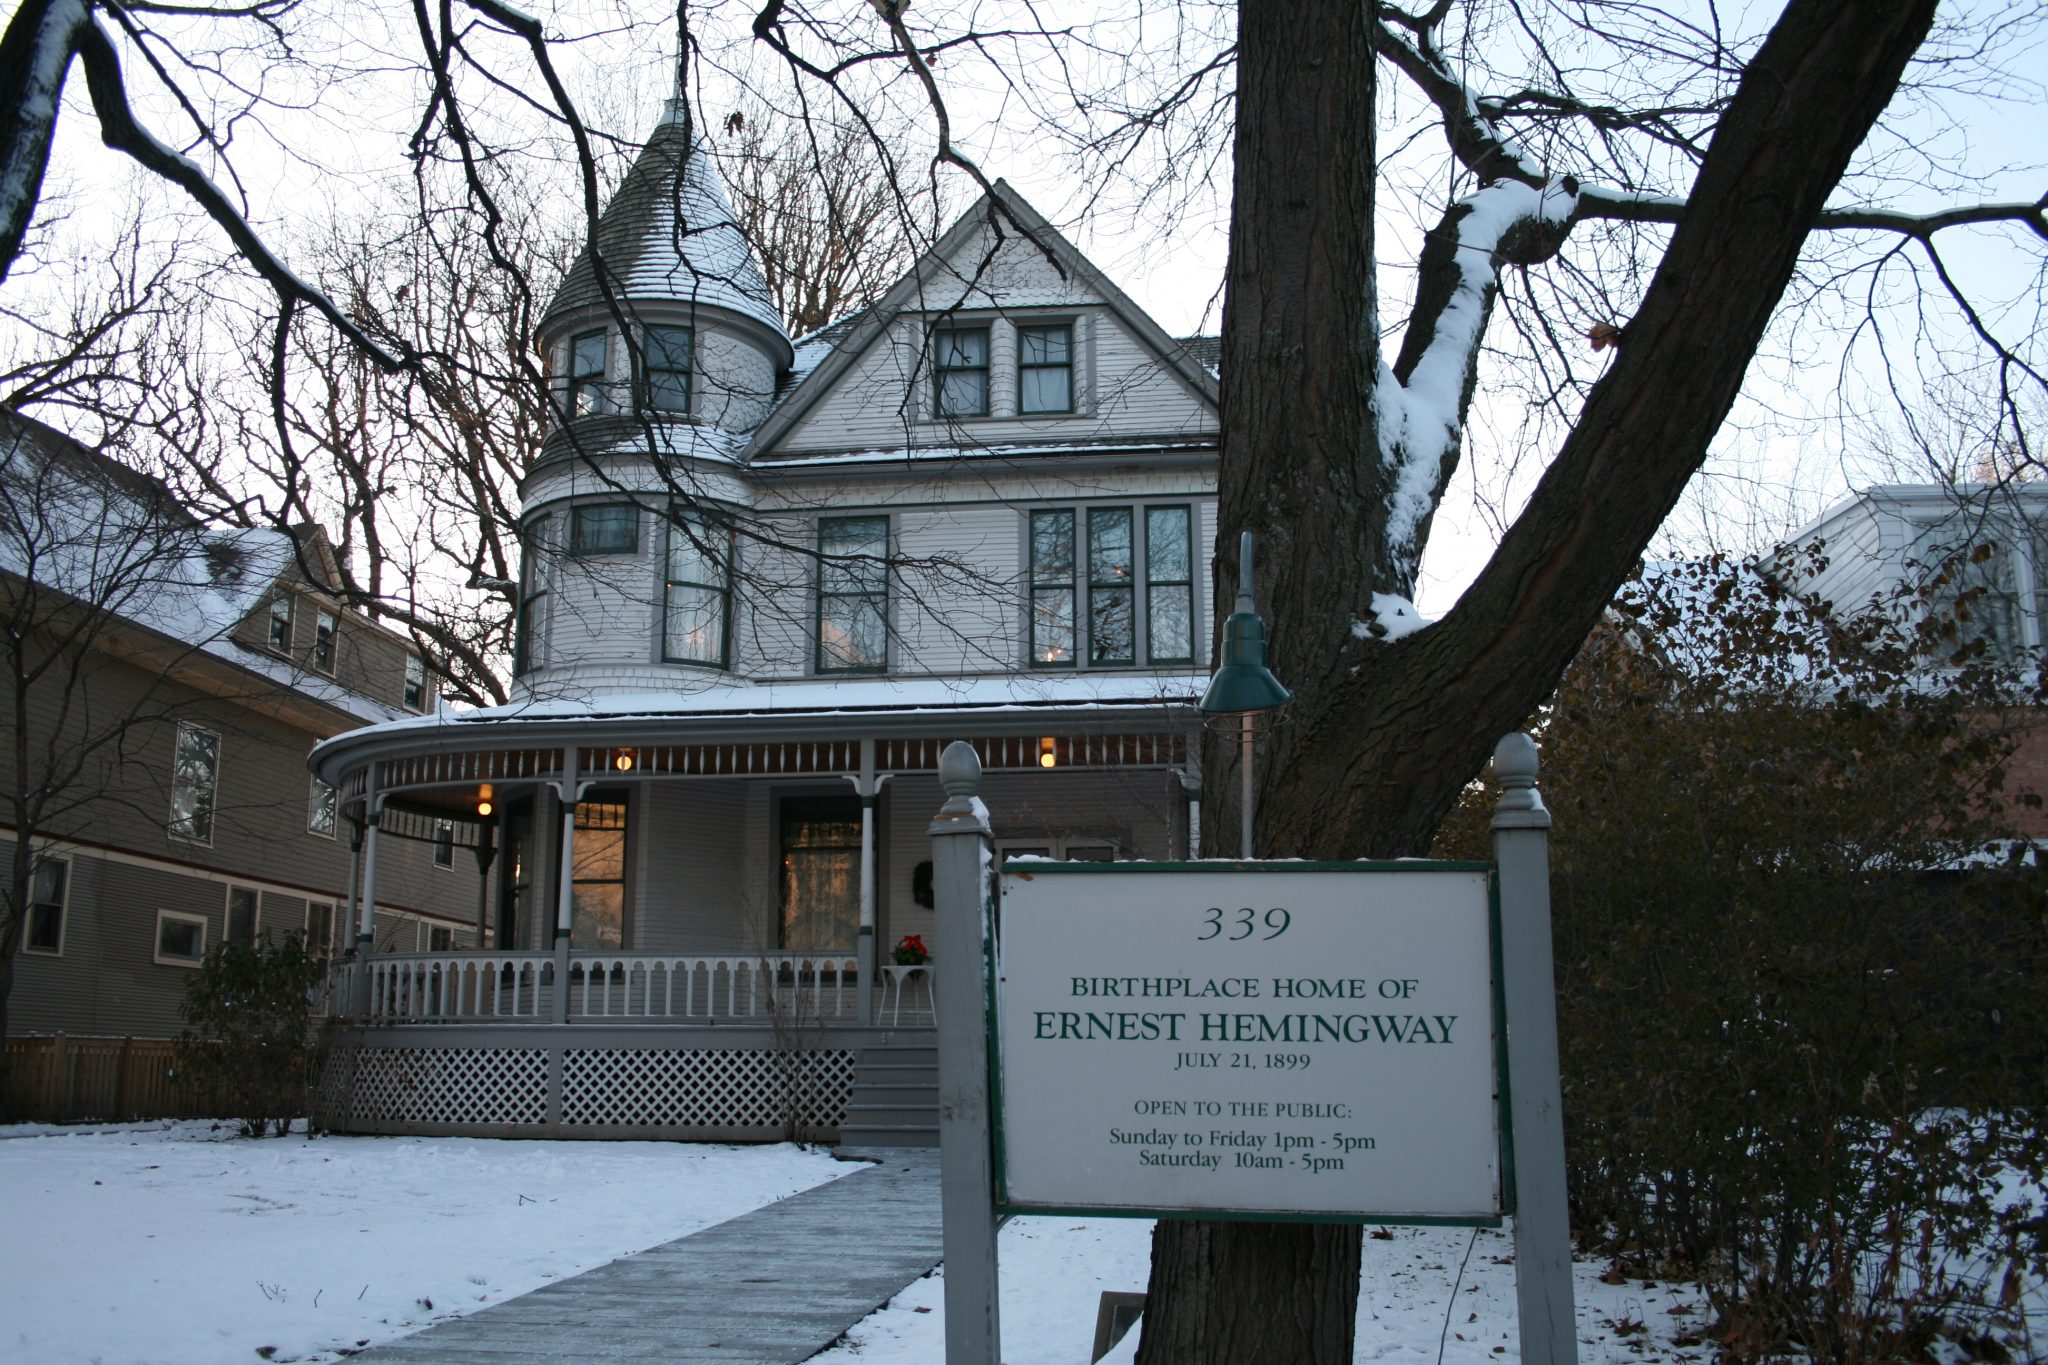 """Birthplace of Ernest Hemingway"", now open to the public @ Nekonomist, 2009, CC BY-NC-ND 2.0"